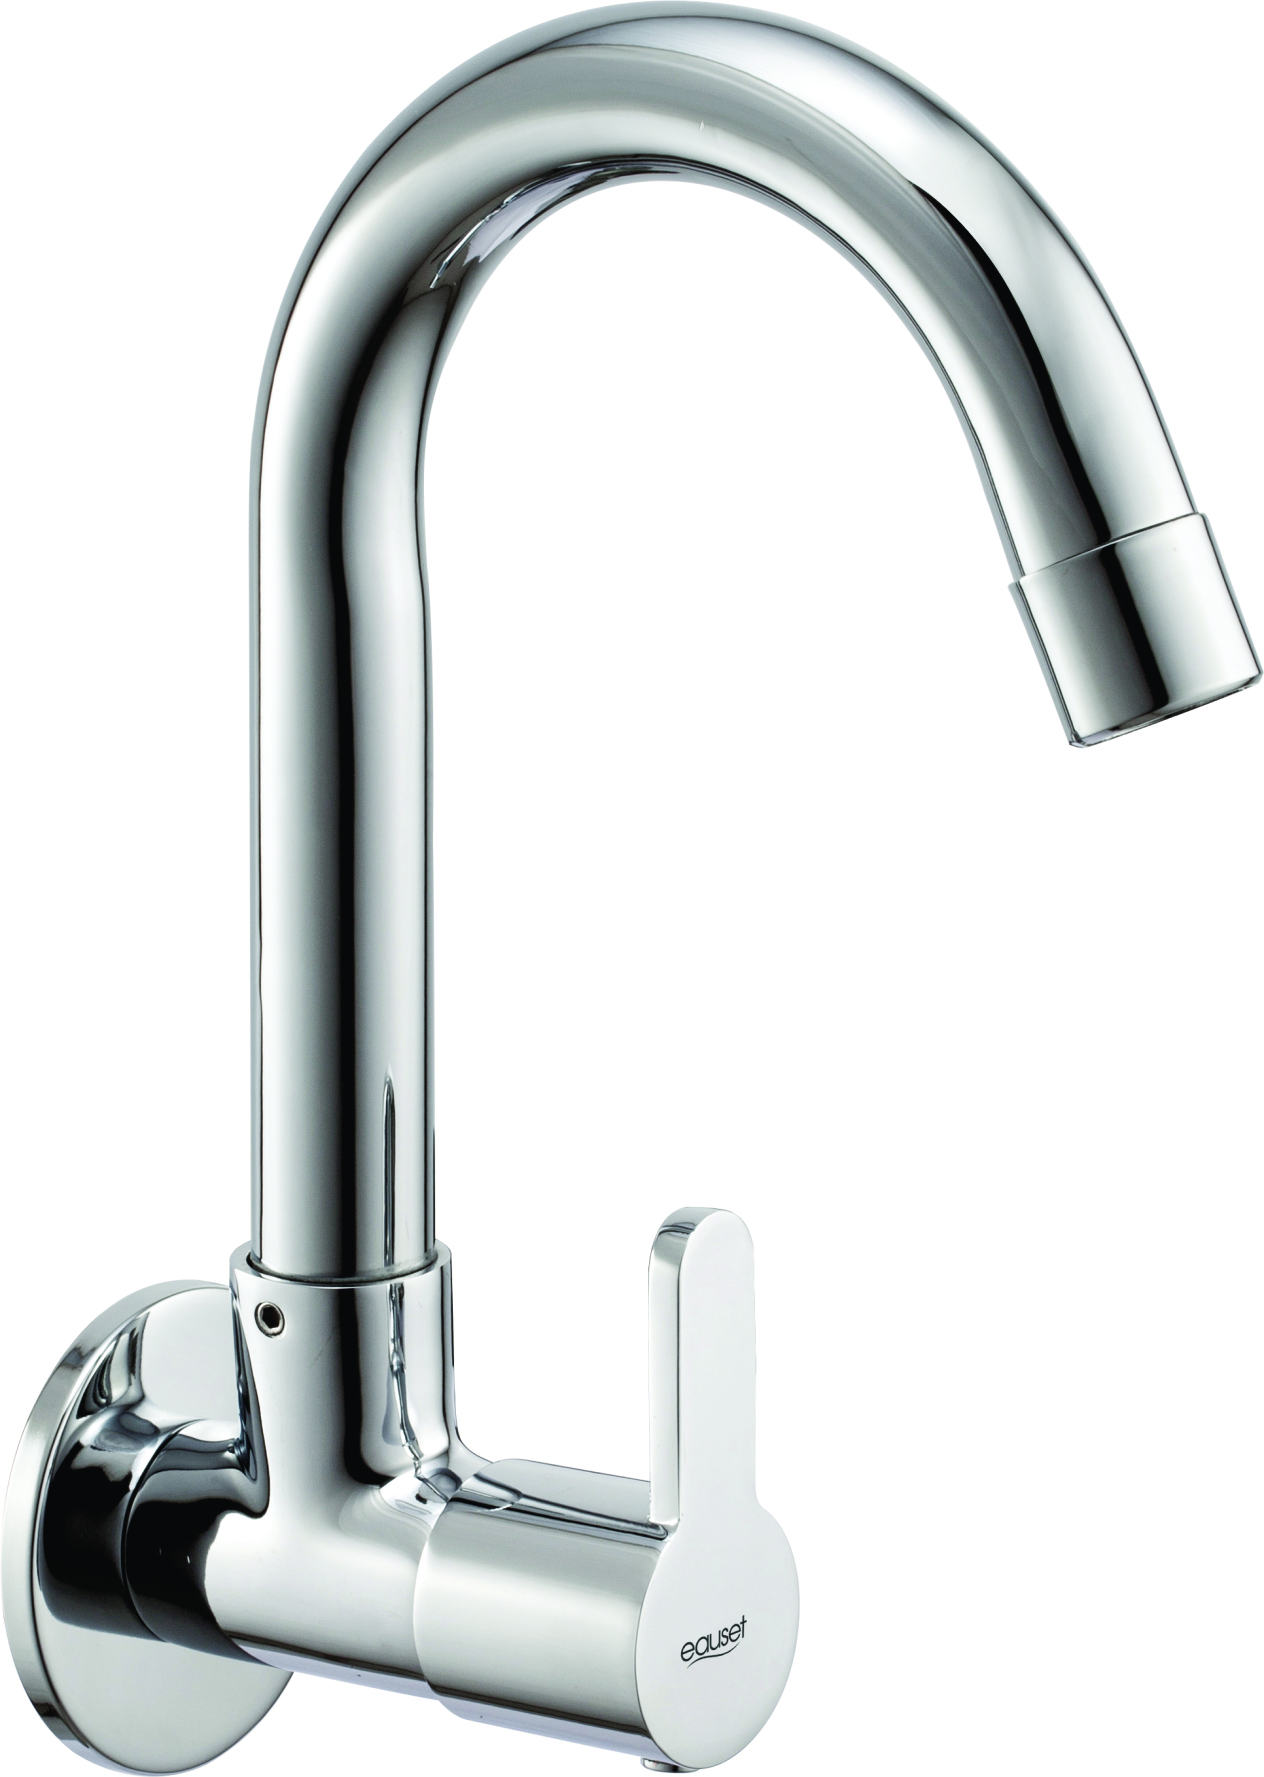 Sink Cock With Swinging Spout Wall Mounted With Wall Flange